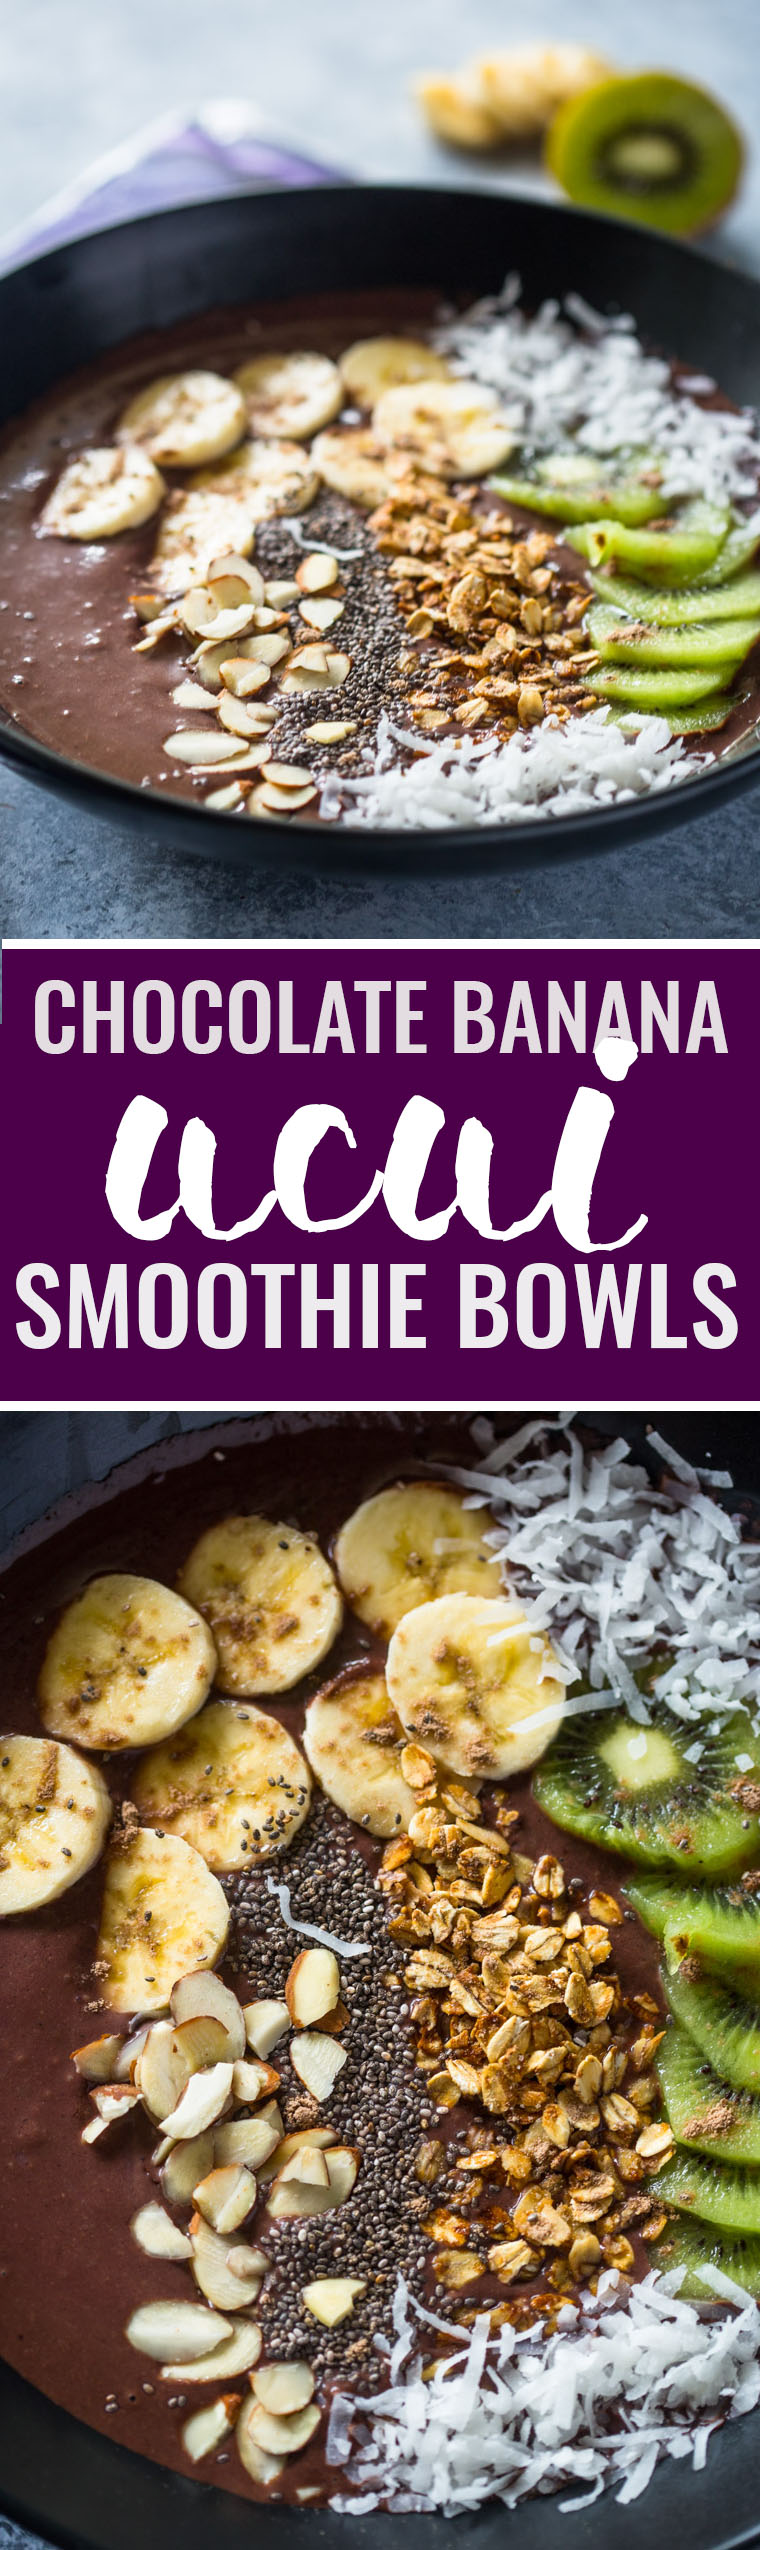 Chocolate Banana Acai Smoothie Bowls